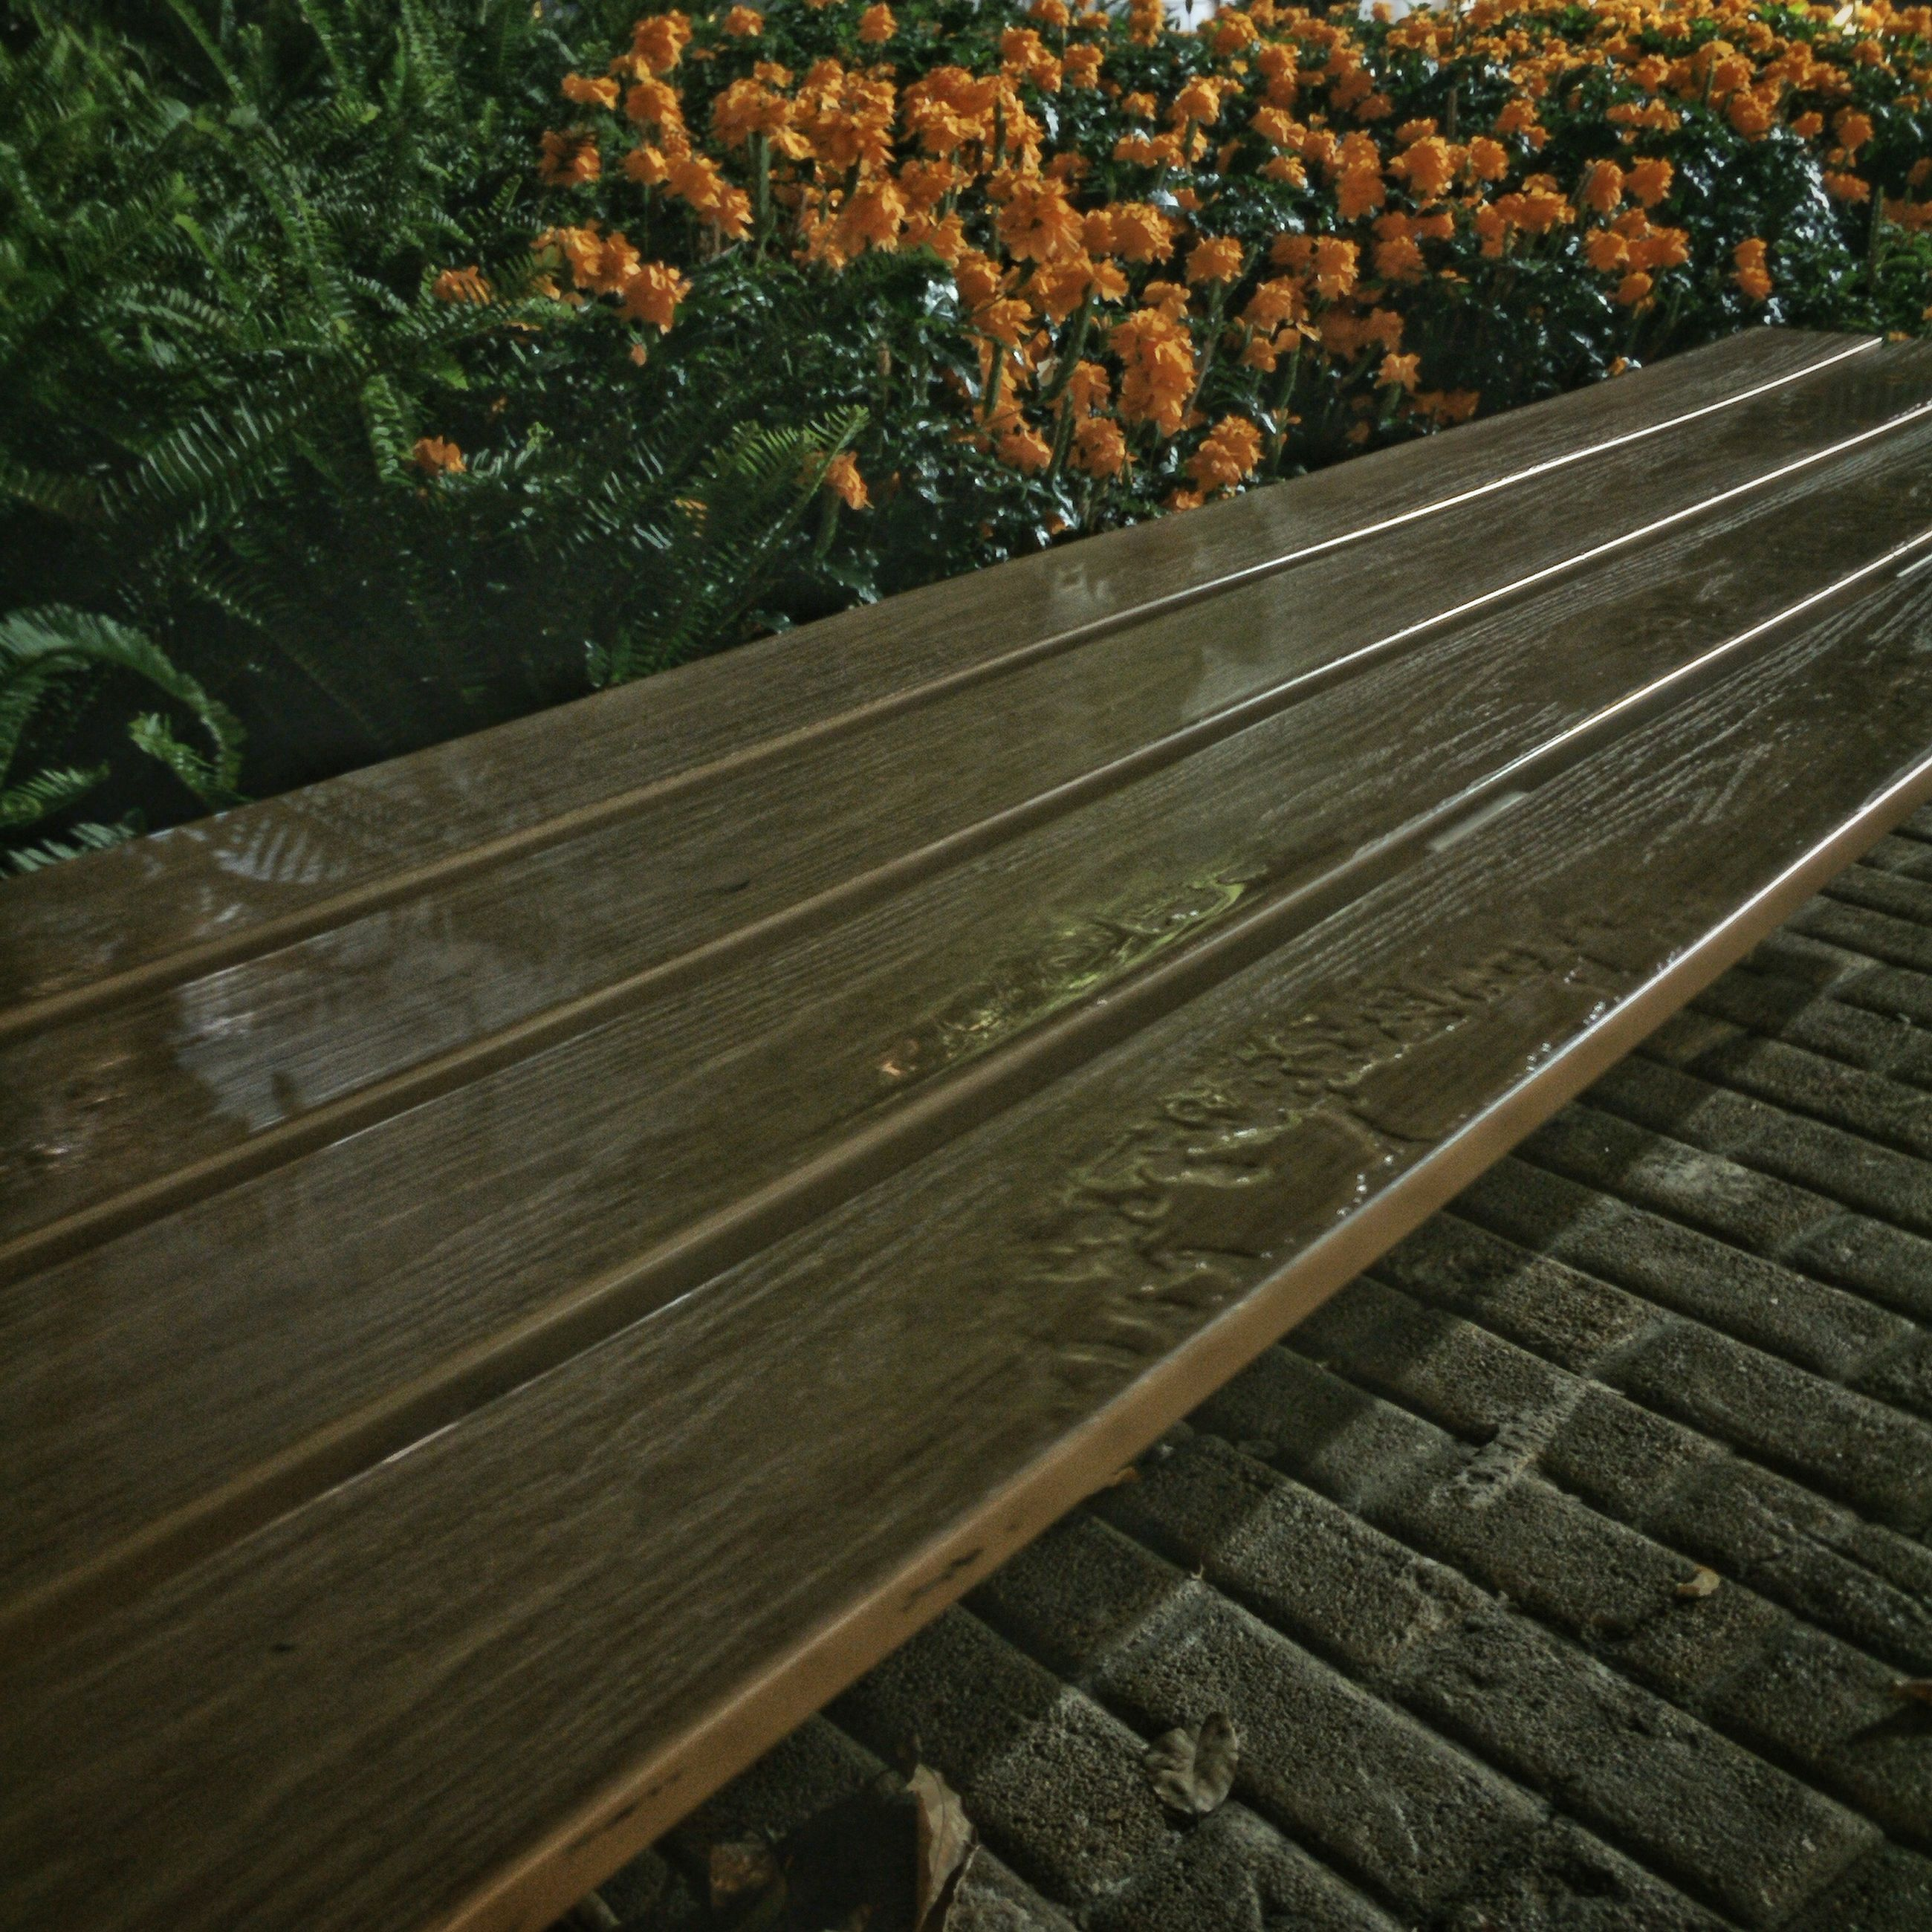 railroad track, the way forward, tree, high angle view, rail transportation, transportation, nature, growth, vanishing point, diminishing perspective, leaf, forest, no people, outdoors, wood - material, day, tranquility, plant, sunlight, railway track